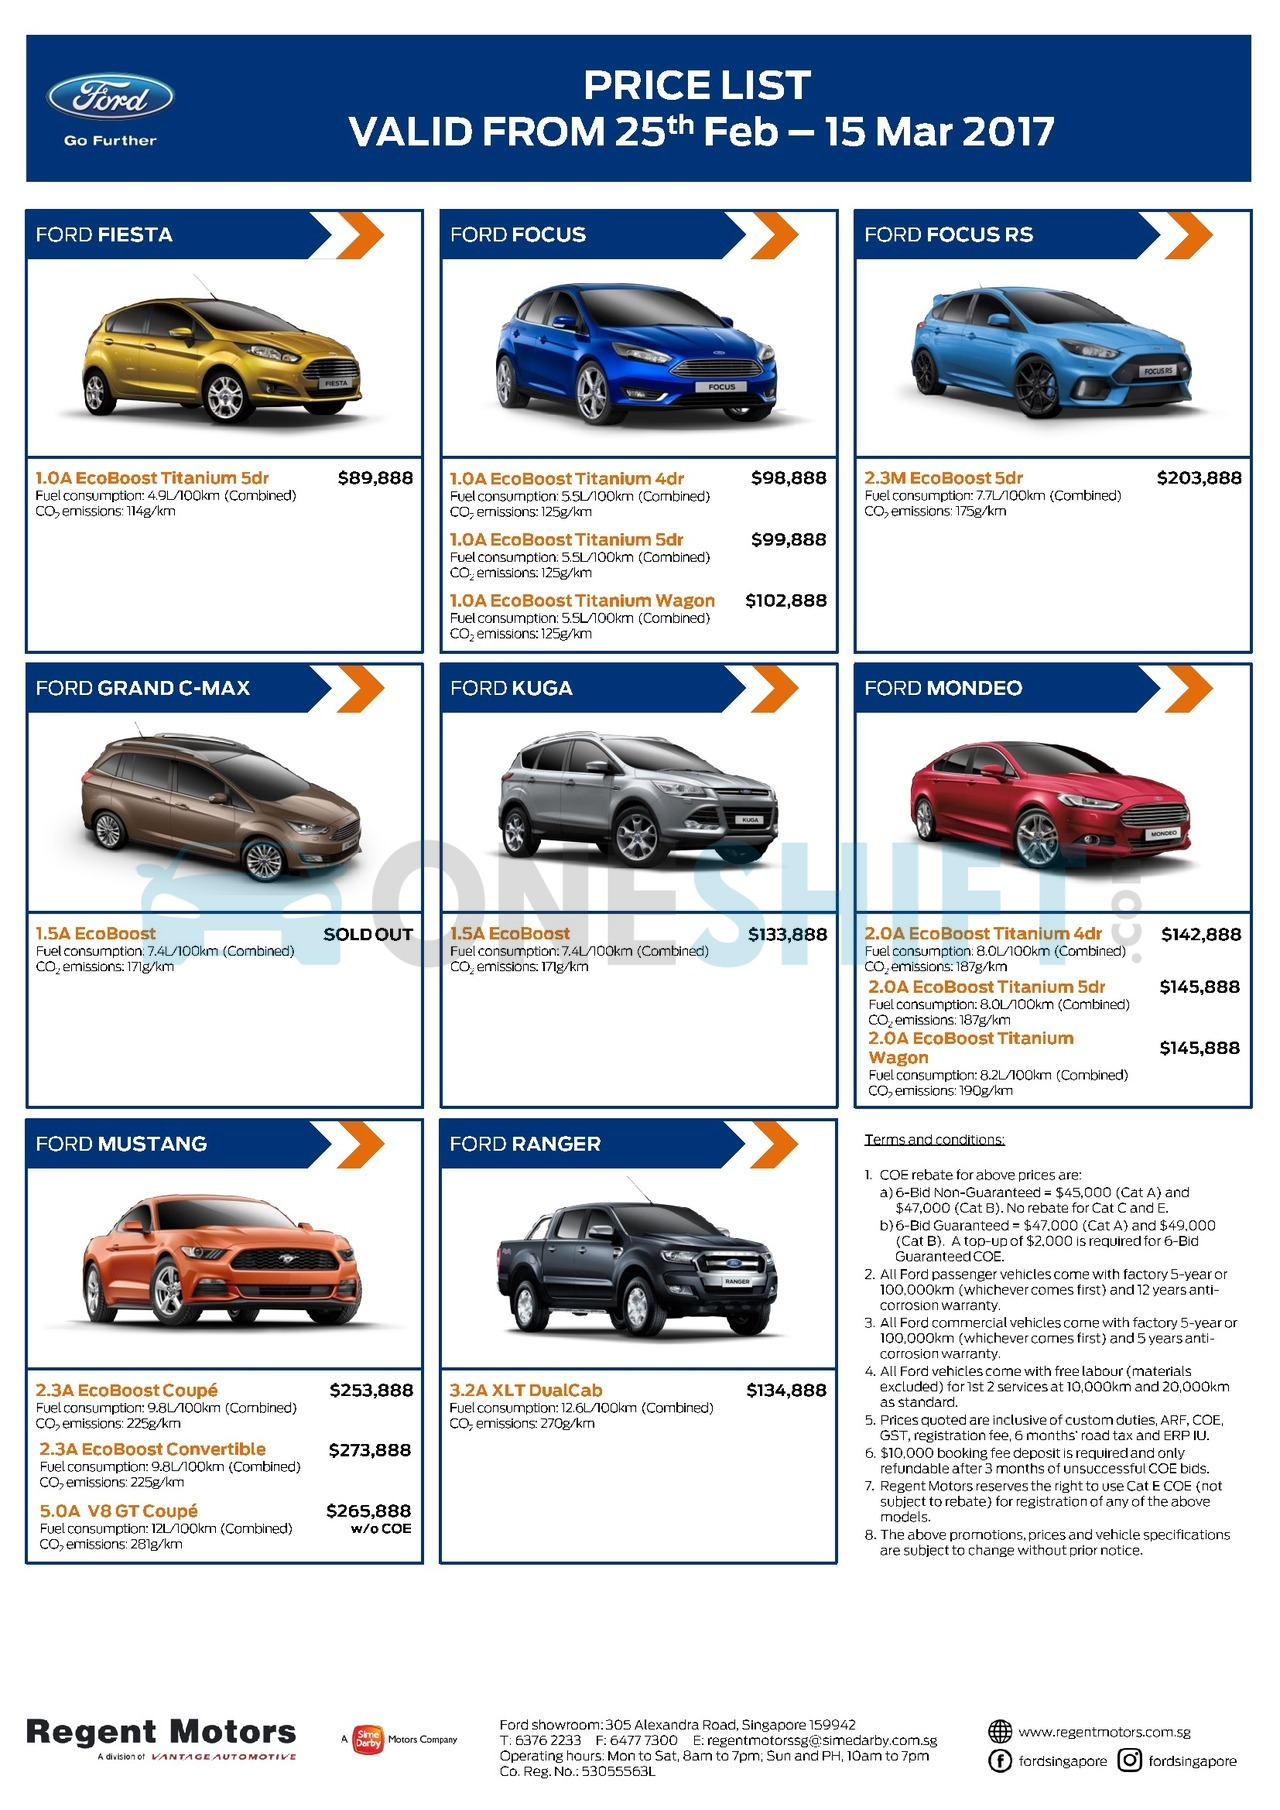 ford Price List 3-15-2017 Page 1